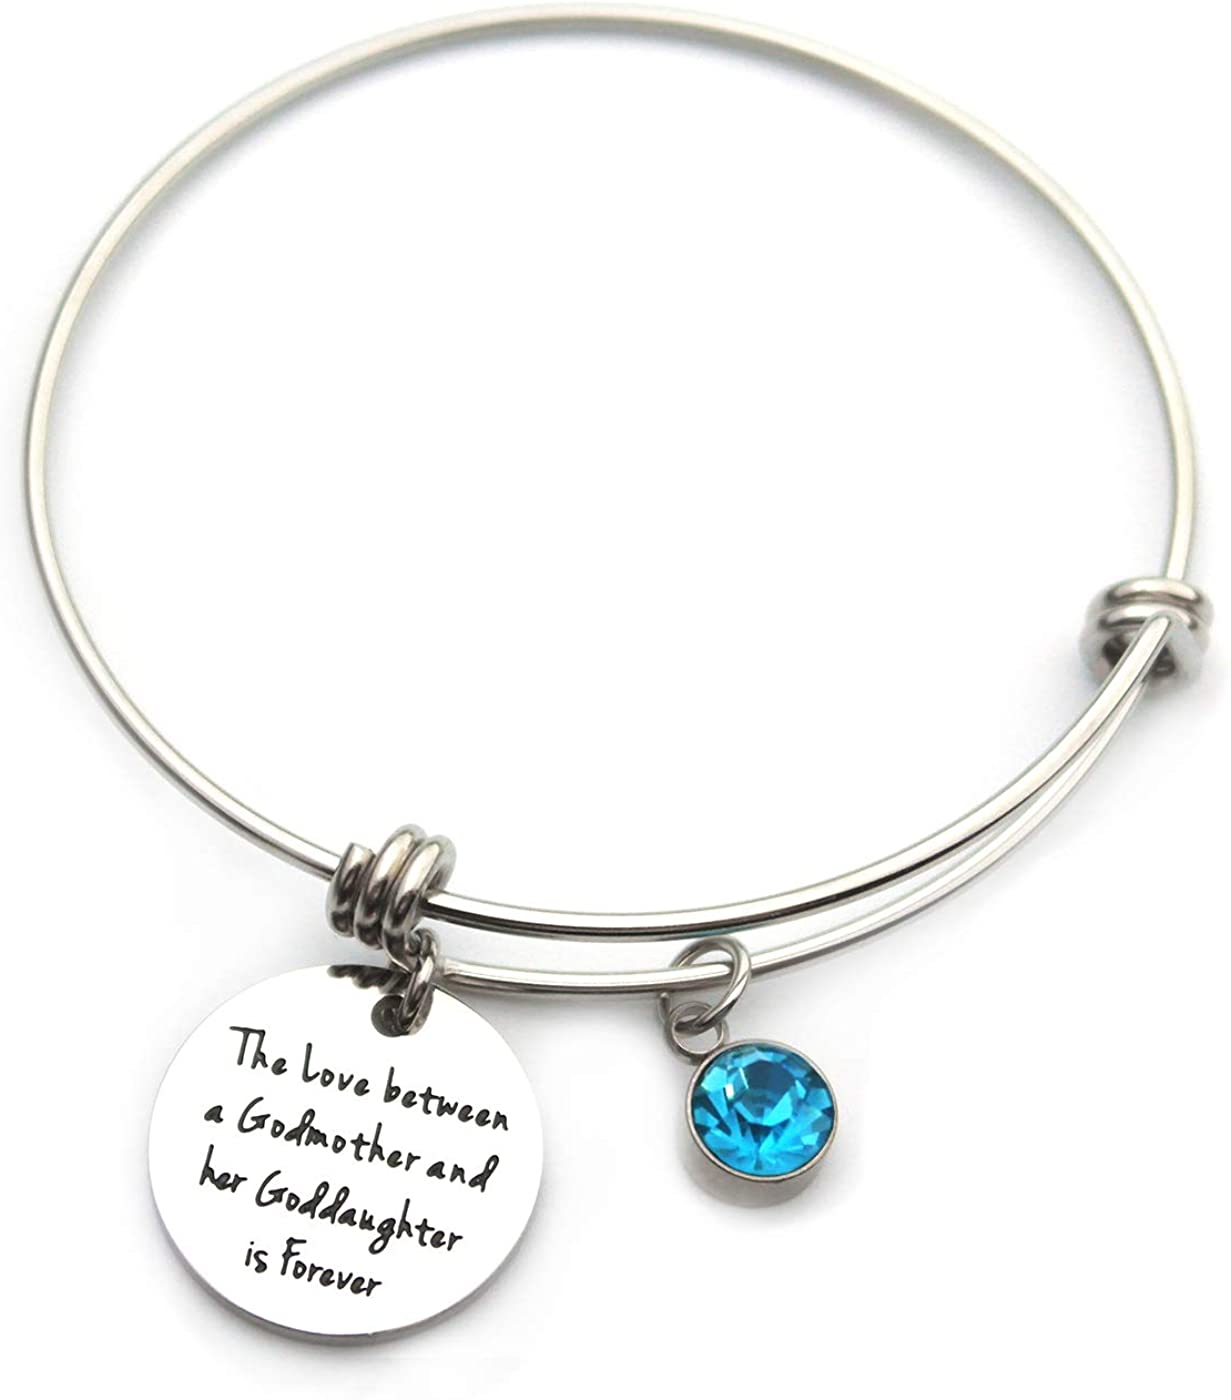 ZUOPIPI Godmother Bracelet Birthday Goddaughter Jewelry Gift With Birthstone The Love Between a Godmother and Her Goddaughter is Forever